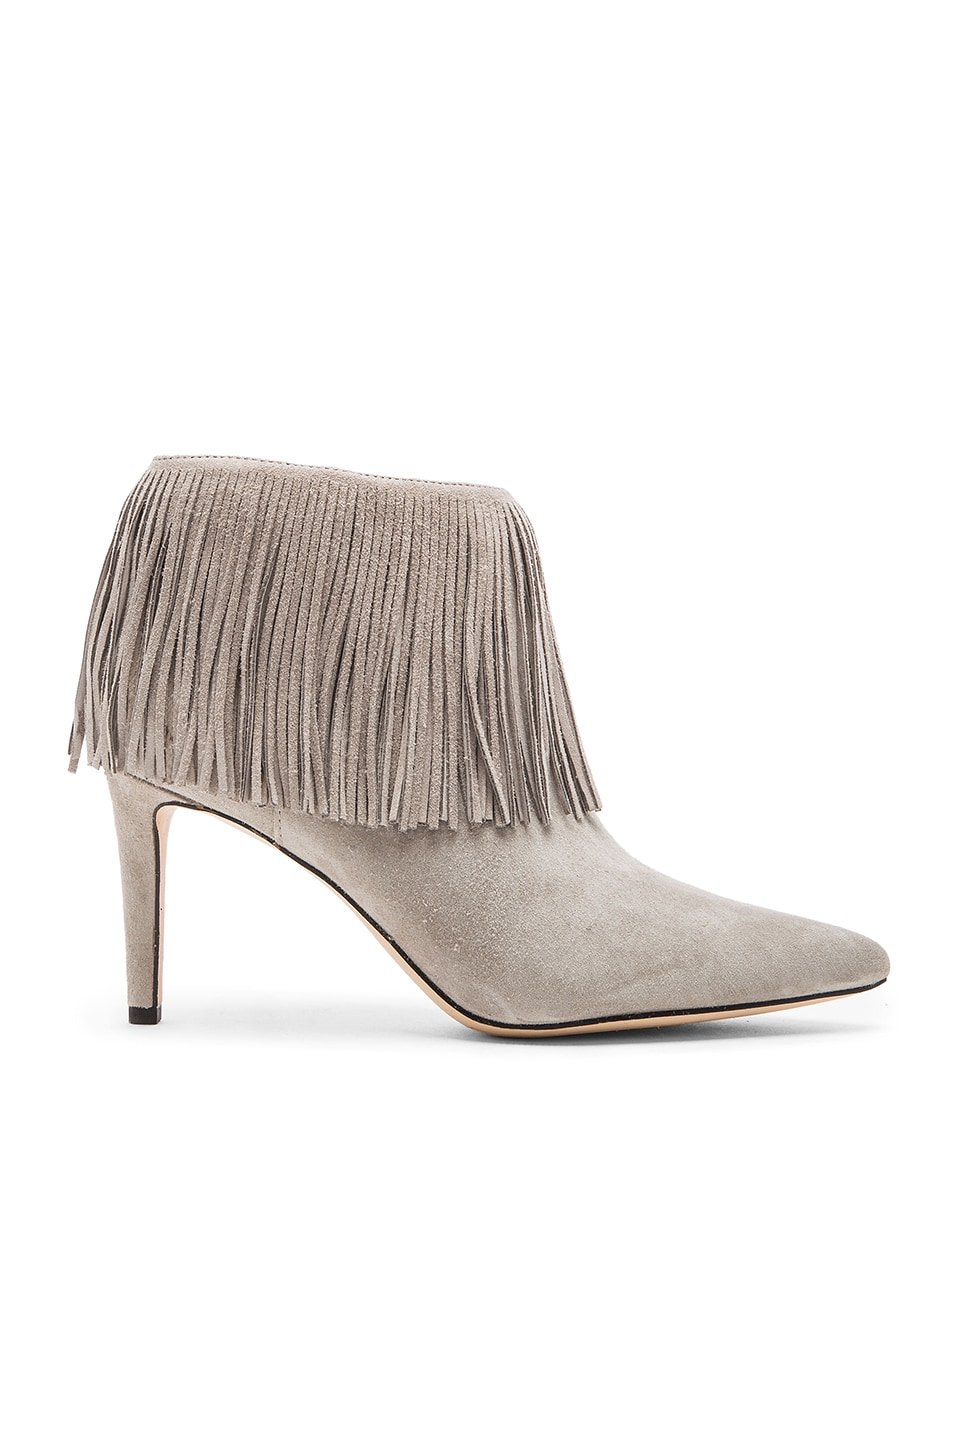 Sam Edelman Kandice Bootie in Grey Suede